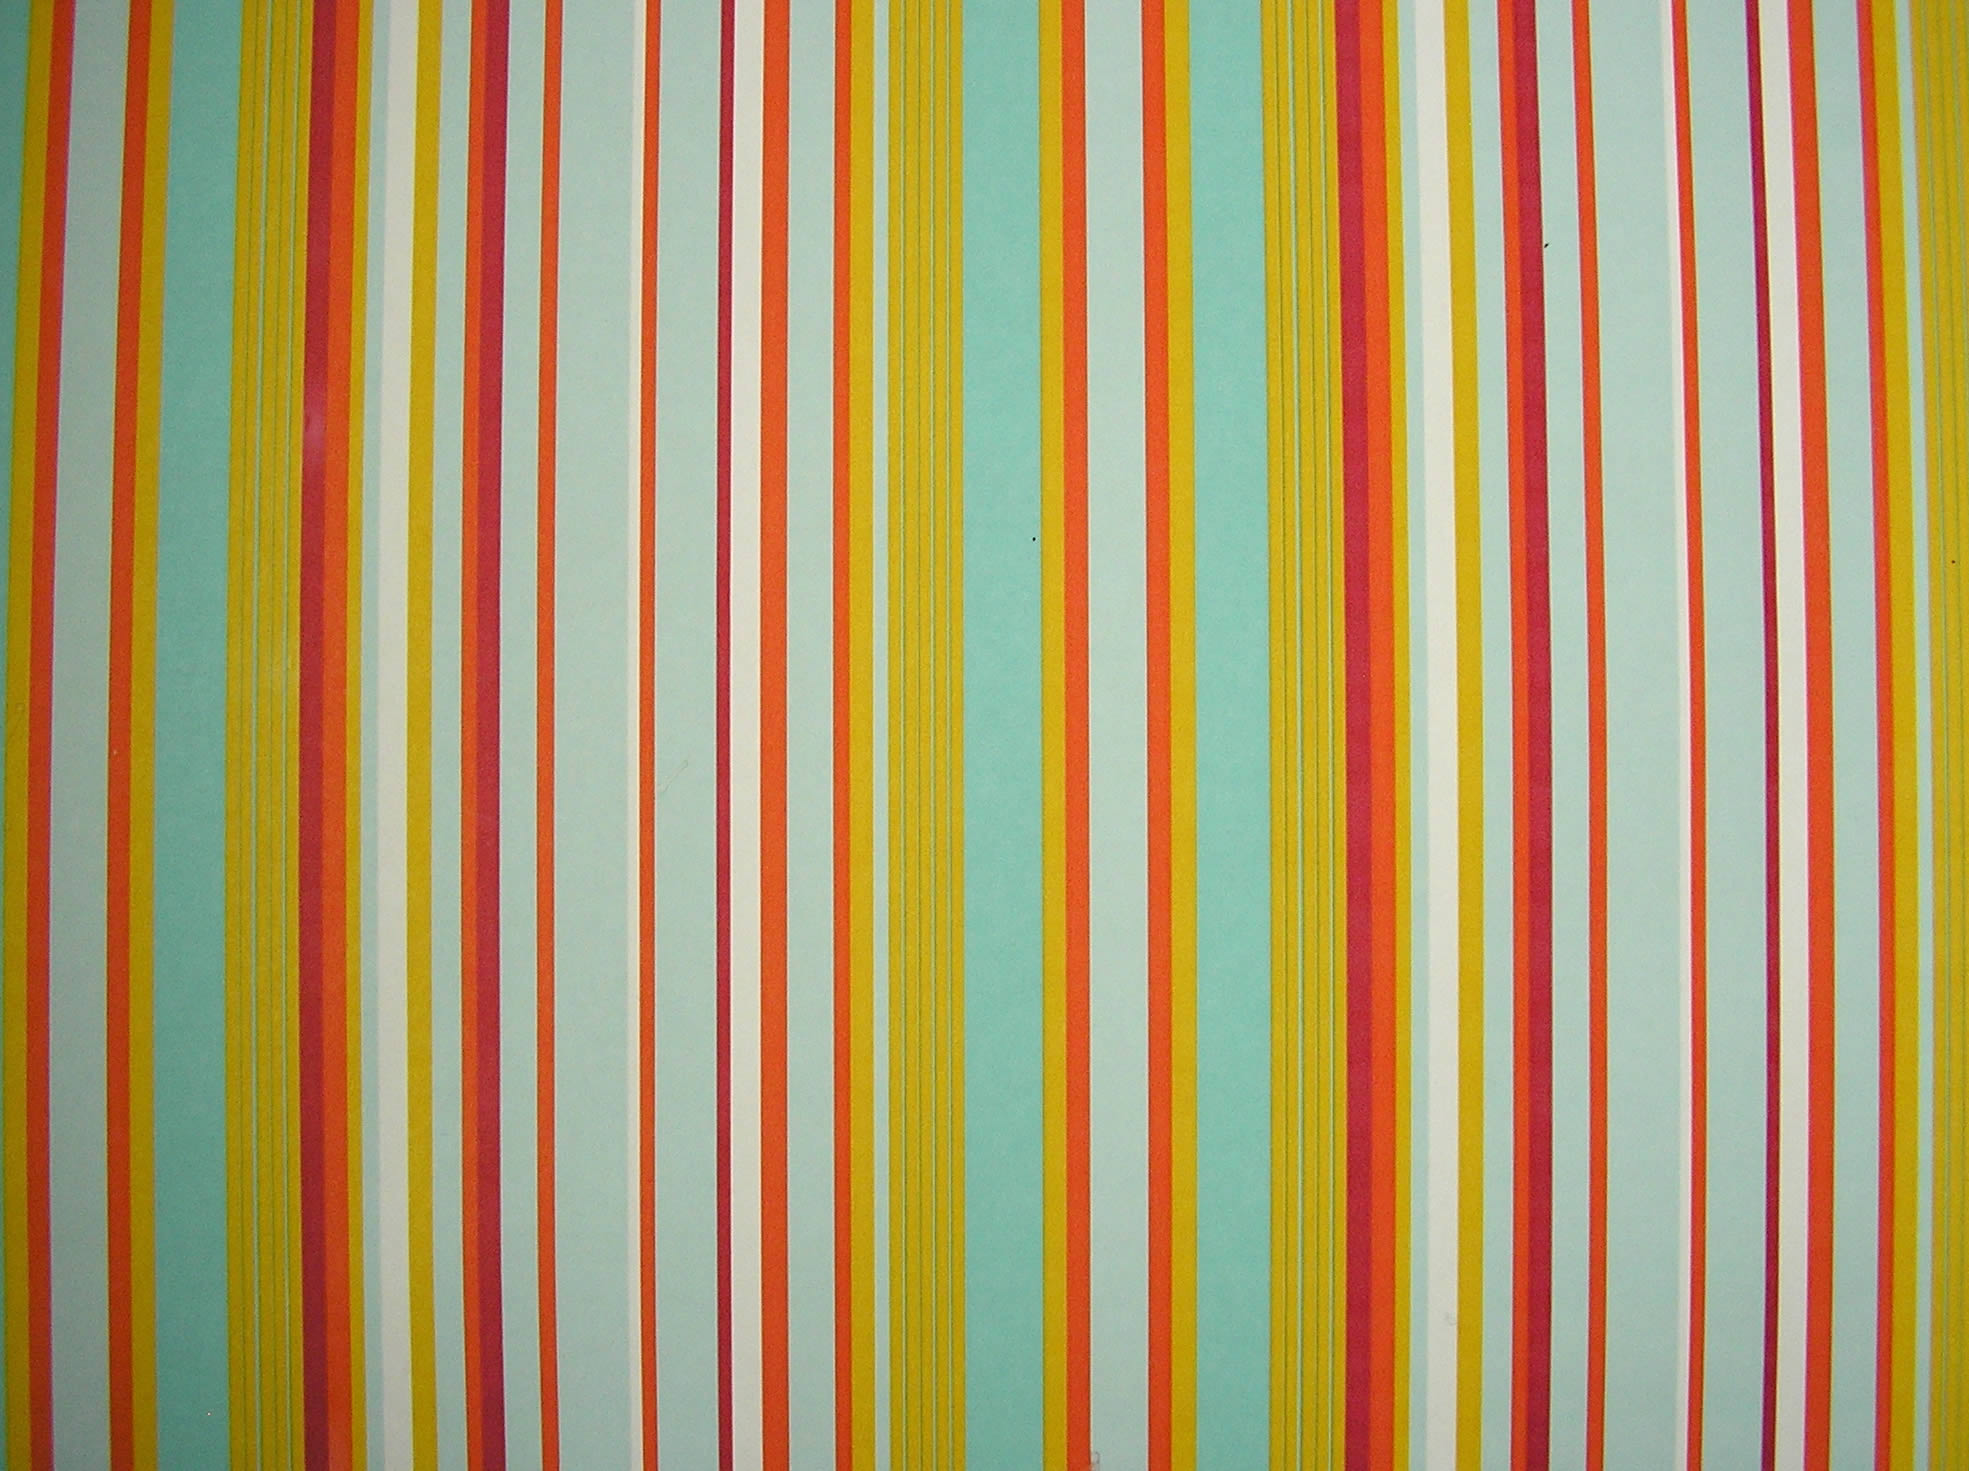 Download Yellow And Blue Striped Wallpaper Gallery: Striped Aprons For Small Children